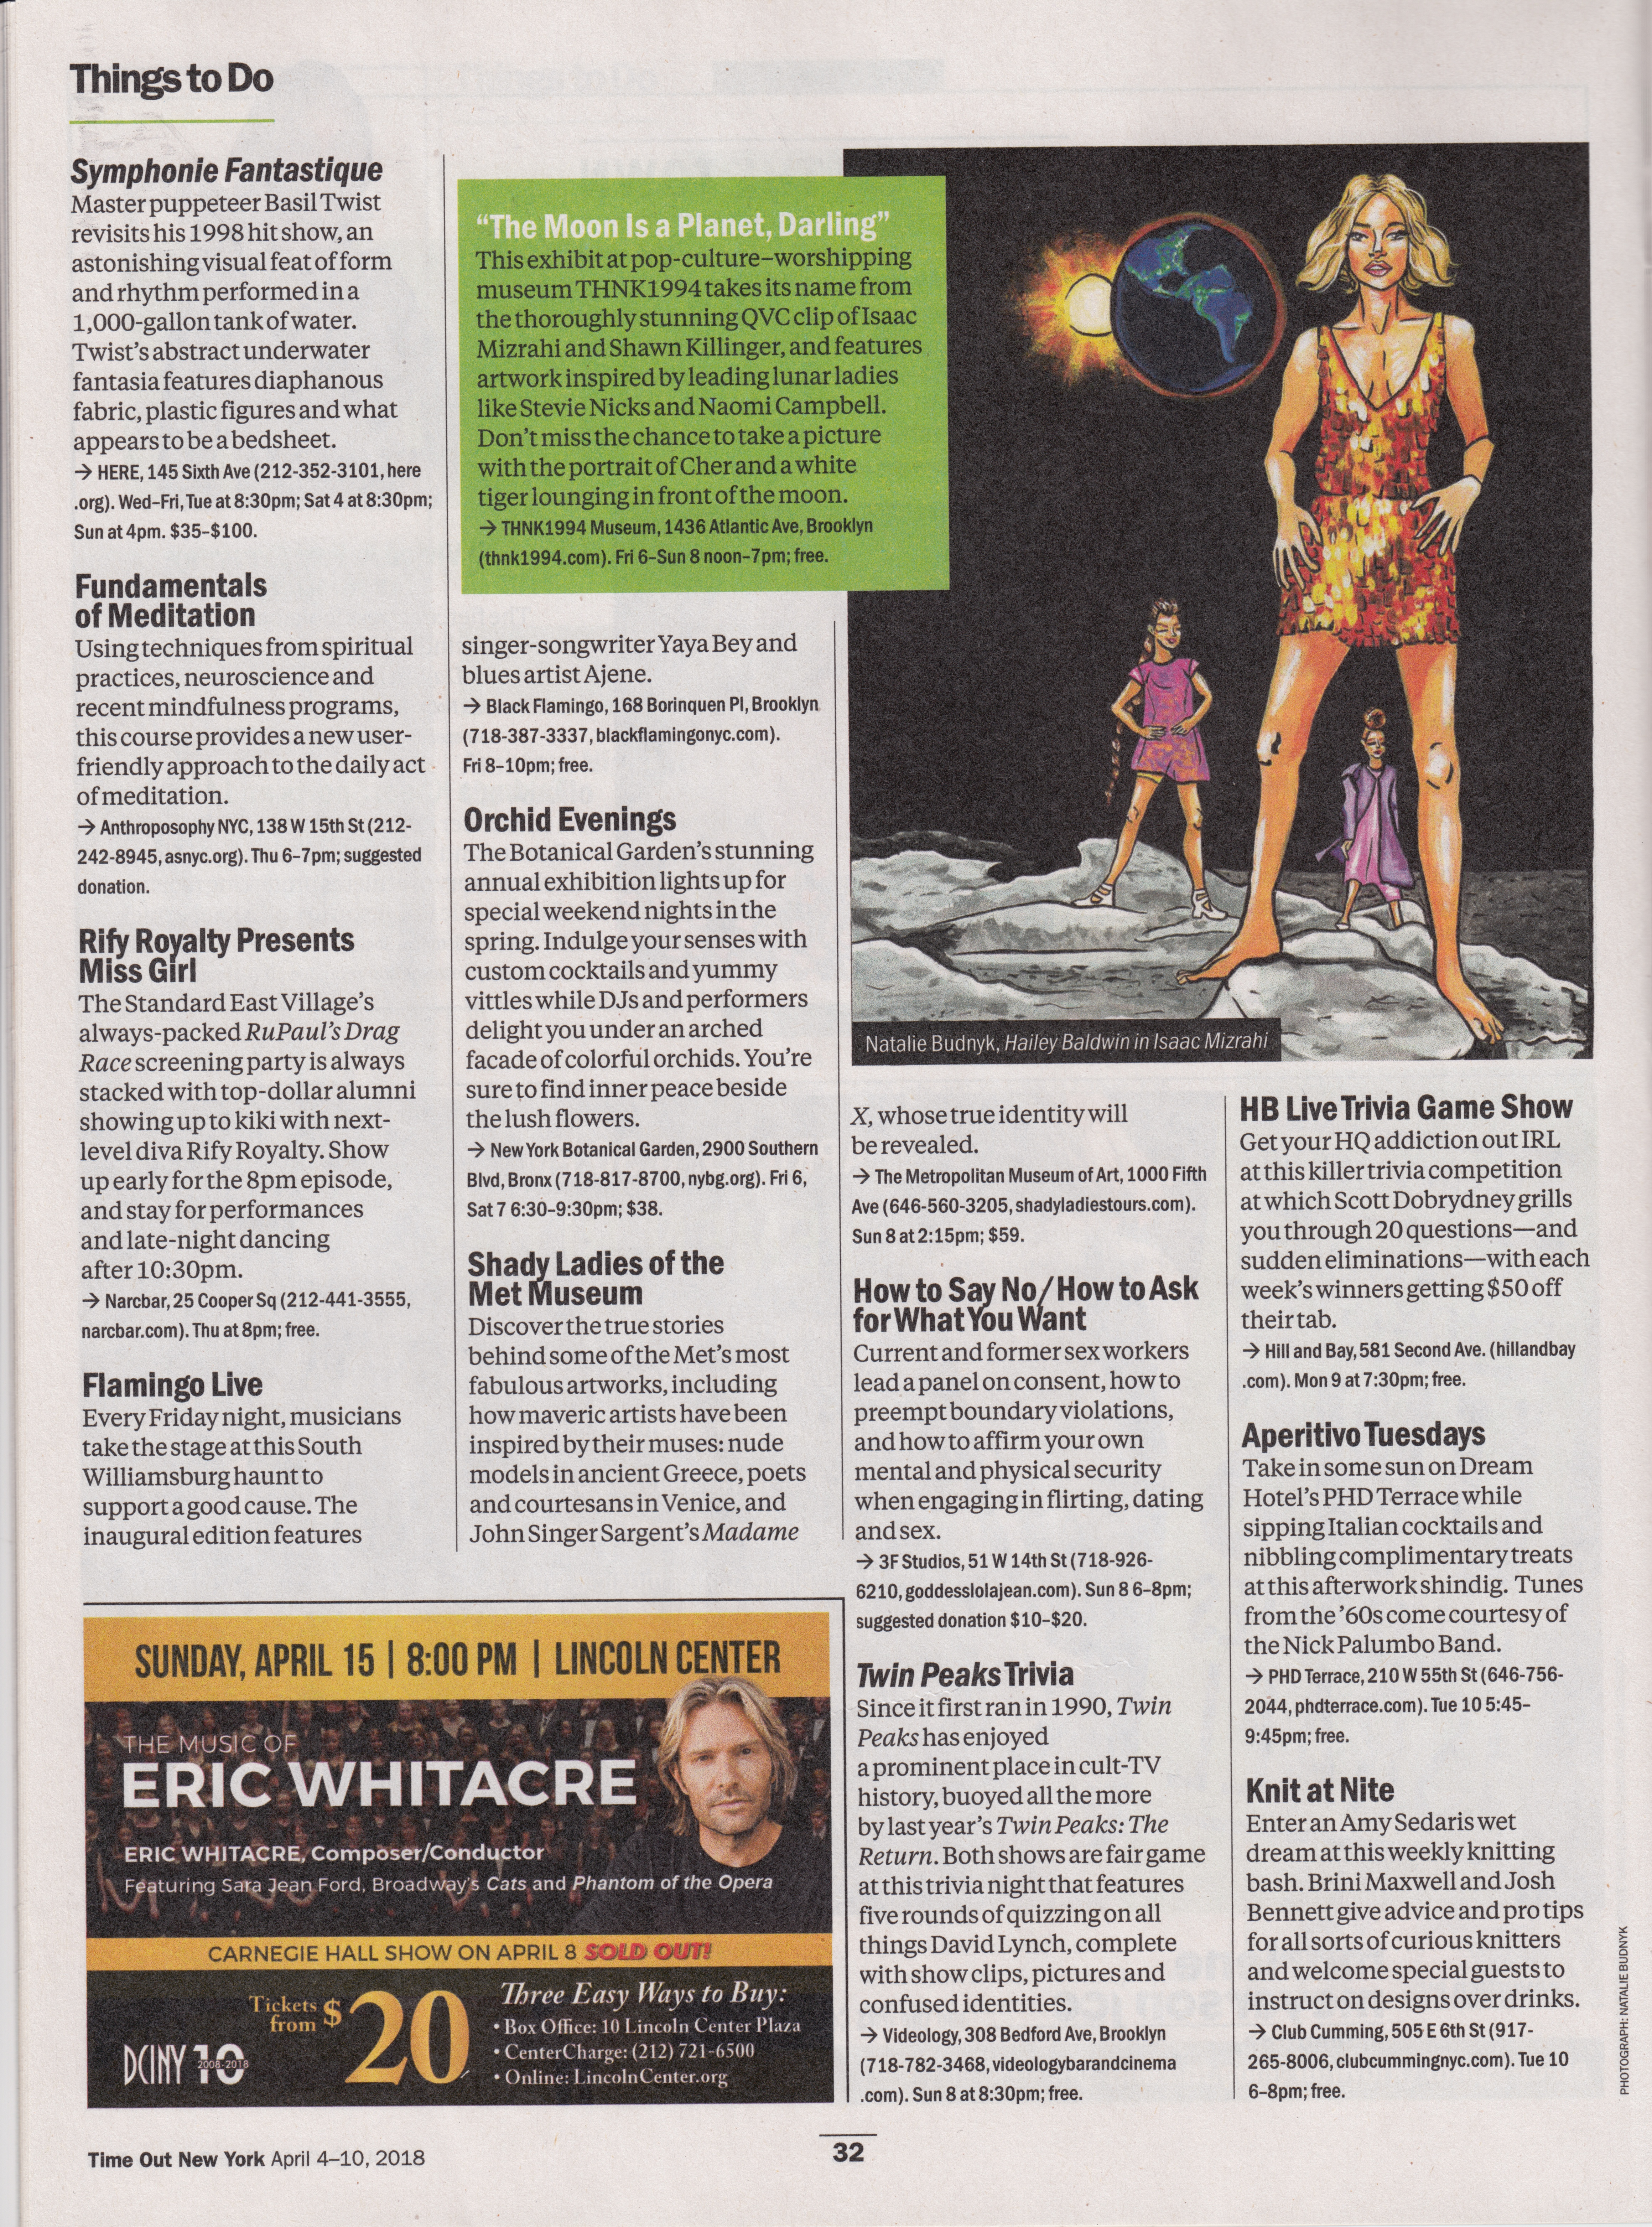 Time Out NY Feature